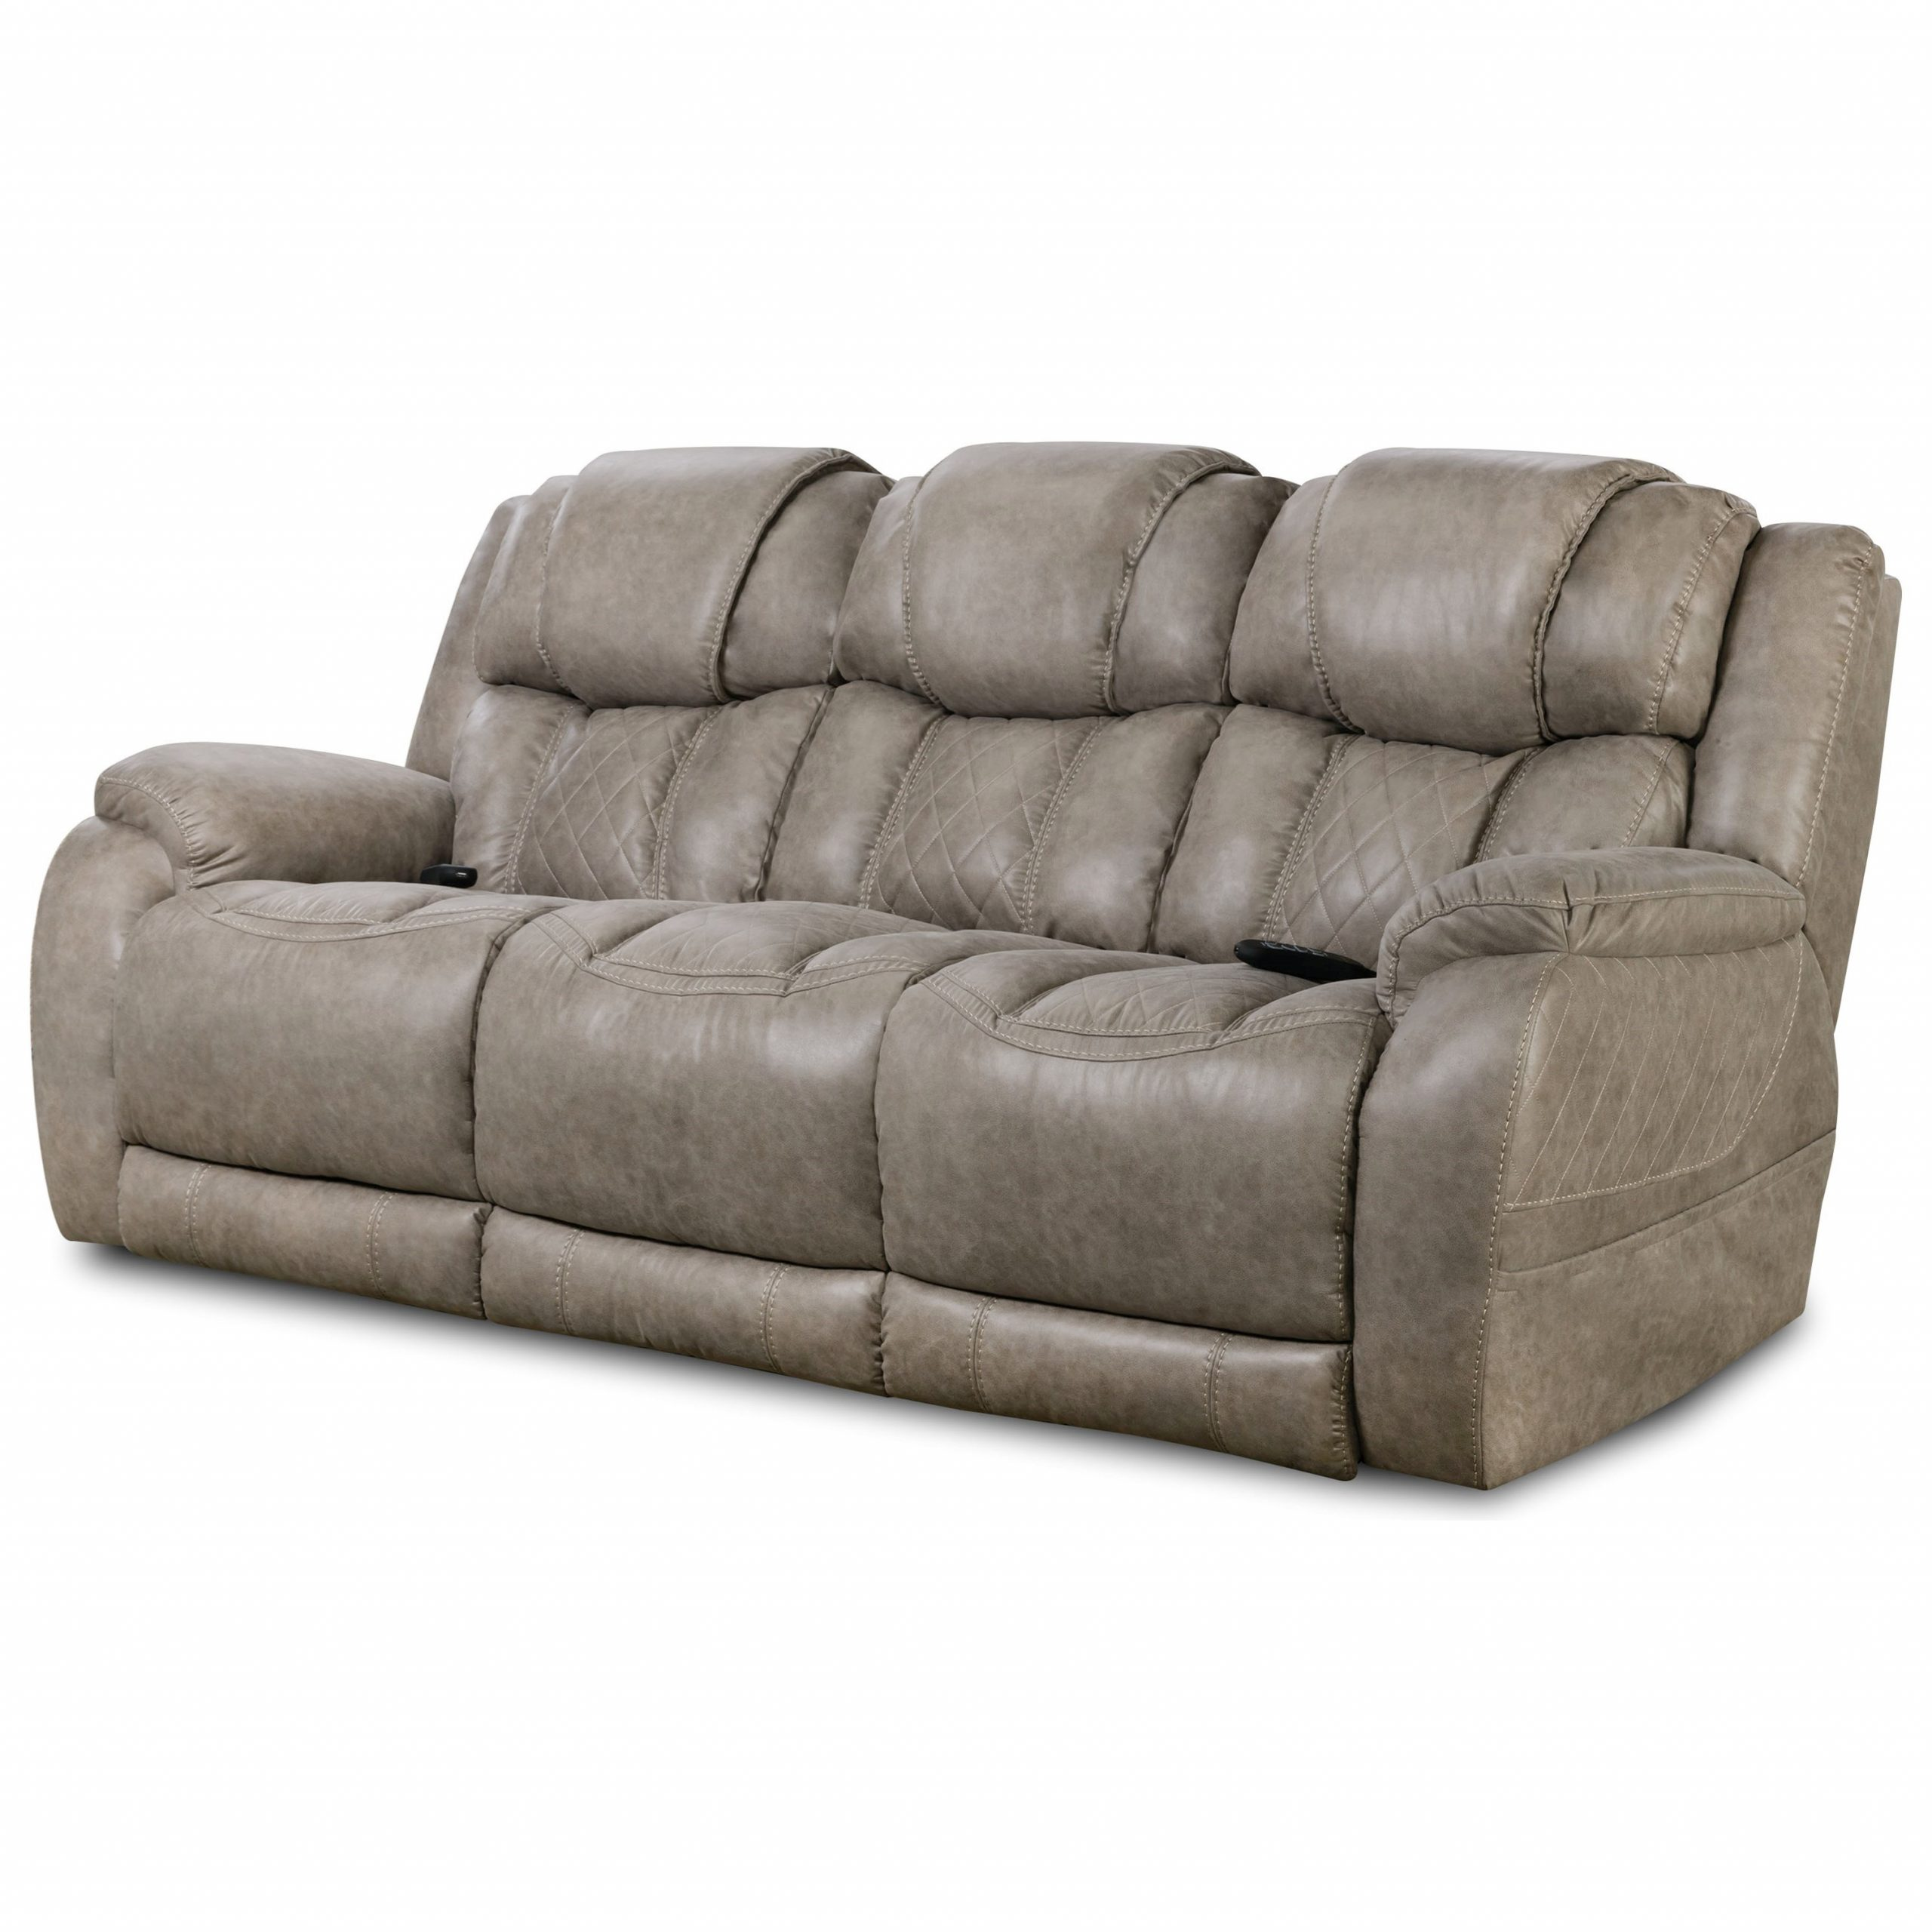 Most Recently Released Homestretch 174 Casual Style Double Reclining Power Sofa Intended For Raven Power Reclining Sofas (View 9 of 20)